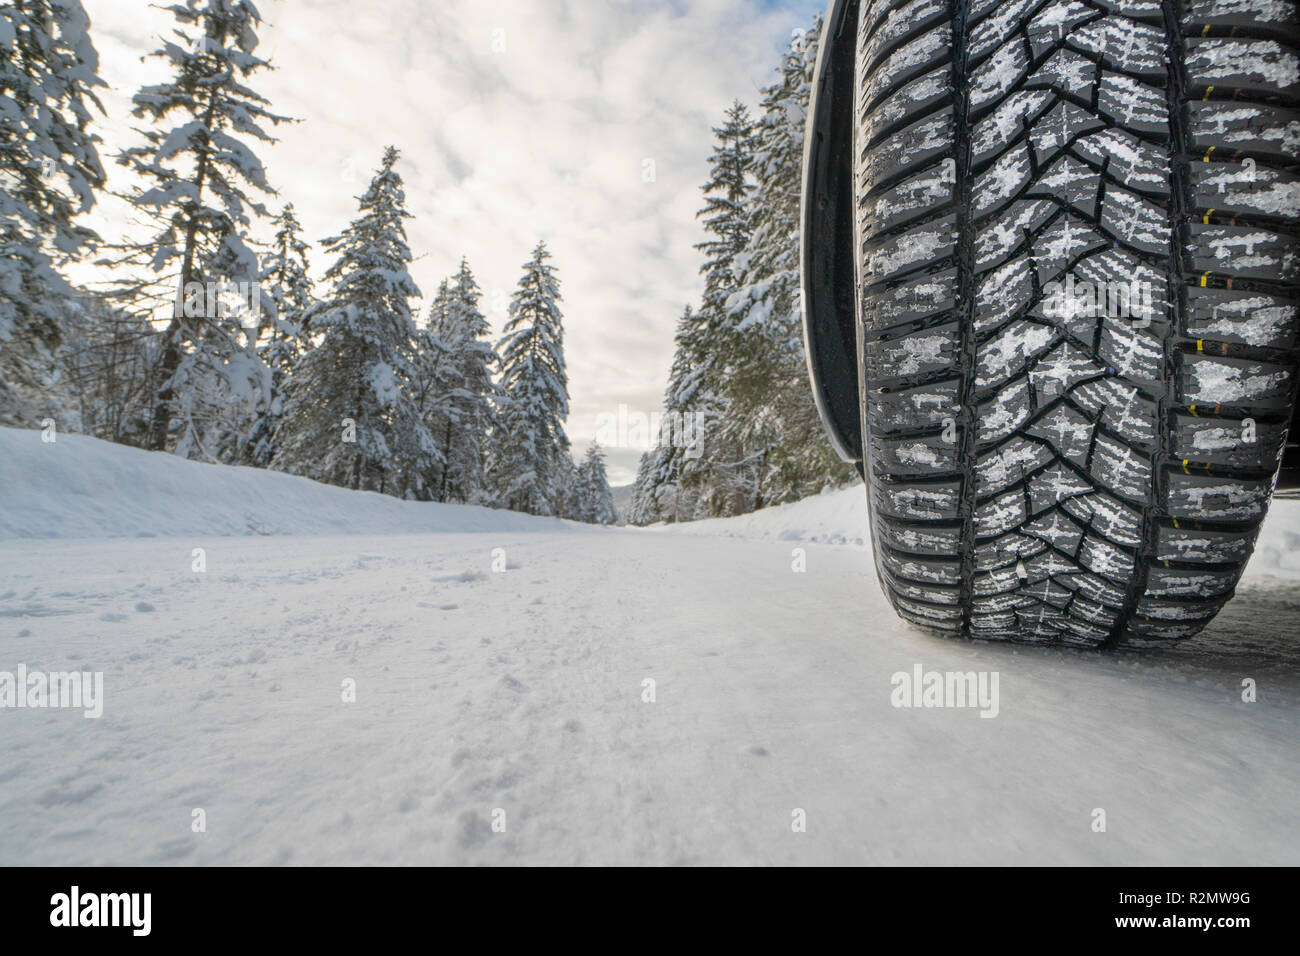 Winter tires on snow-slippery road - Stock Image